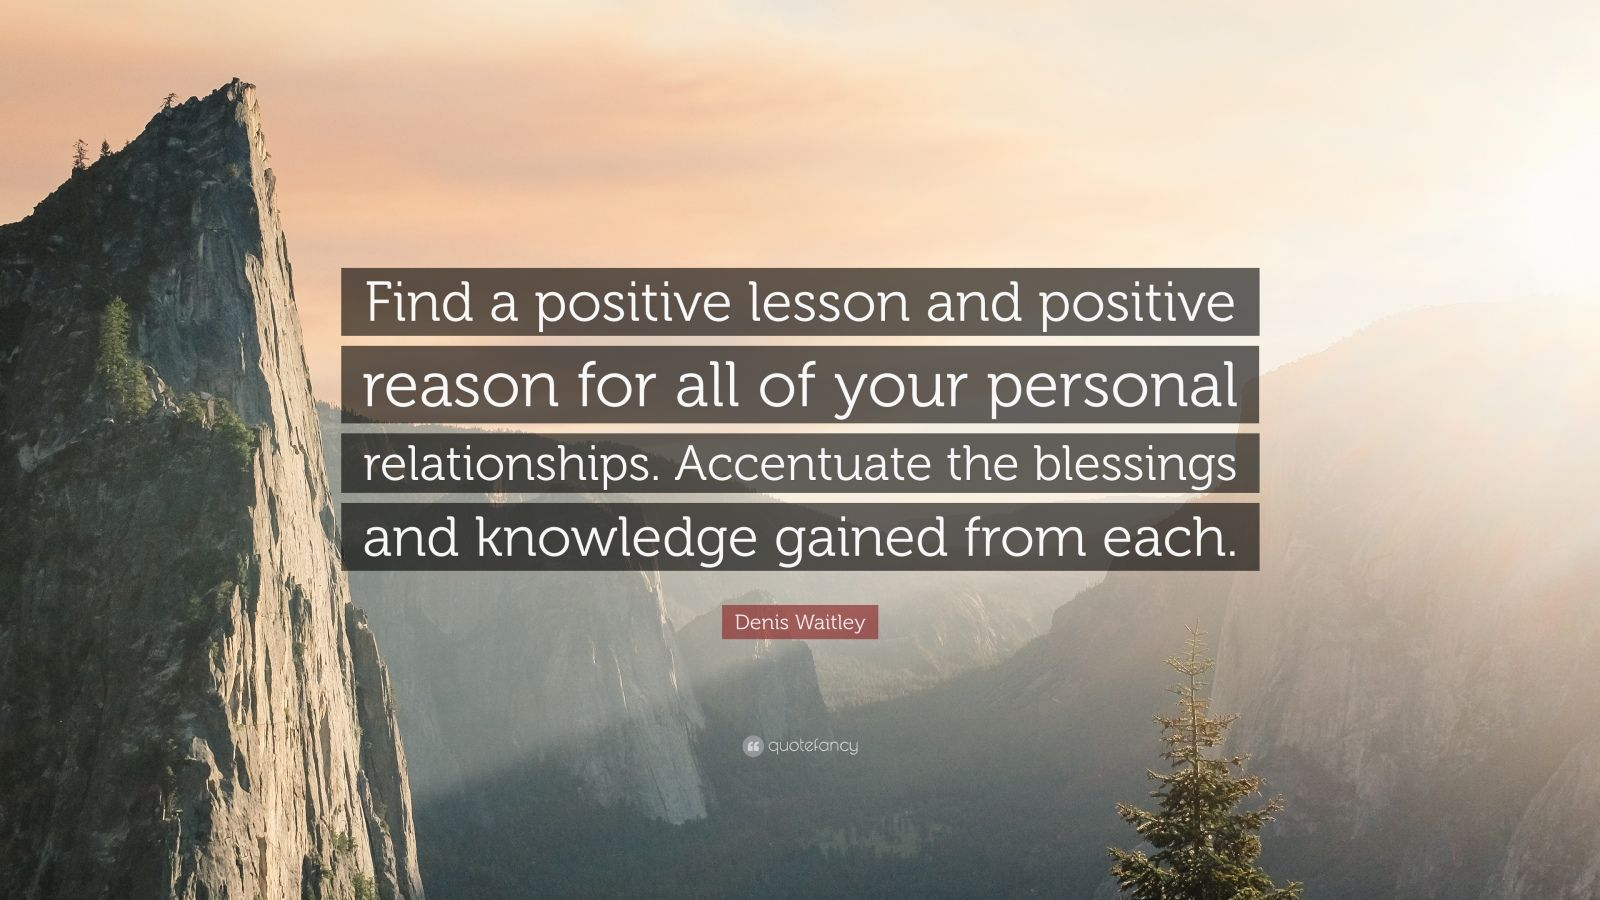 """Denis Waitley Quote: """"Find a positive lesson and positive reason for all of your personal relationships. Accentuate the blessings and knowledge gained from each."""""""